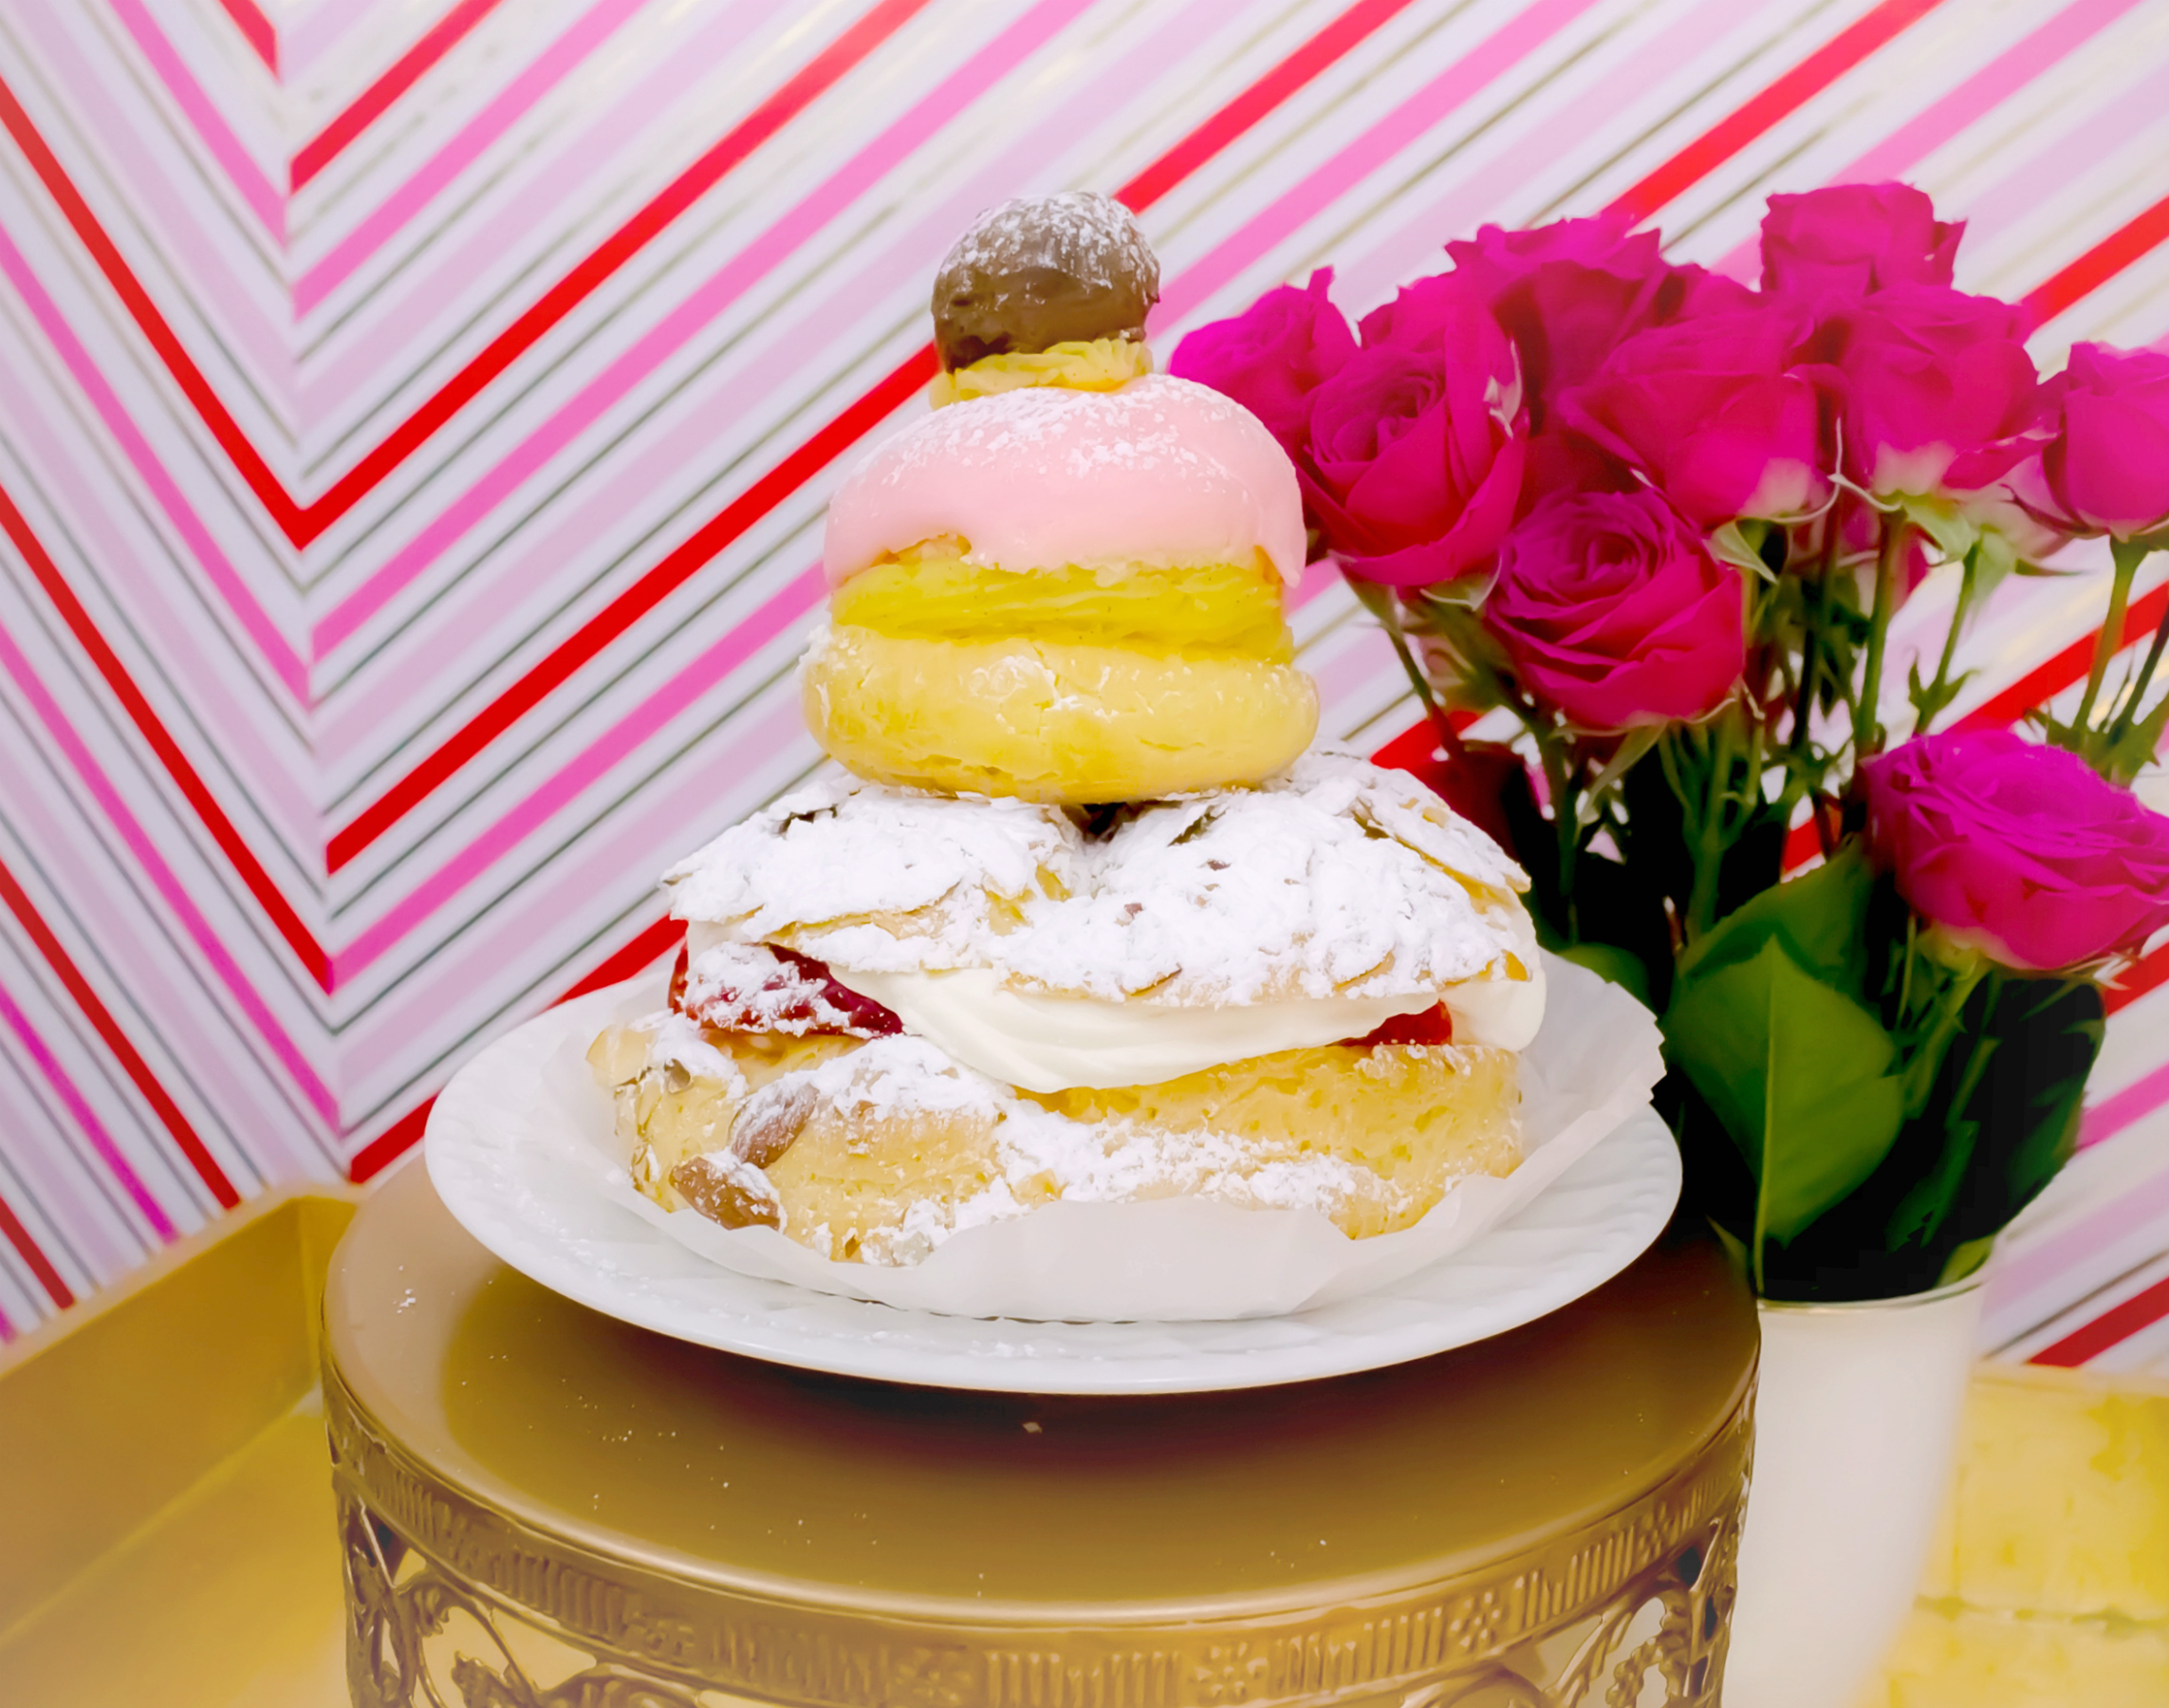 Laduree pastry cream puff